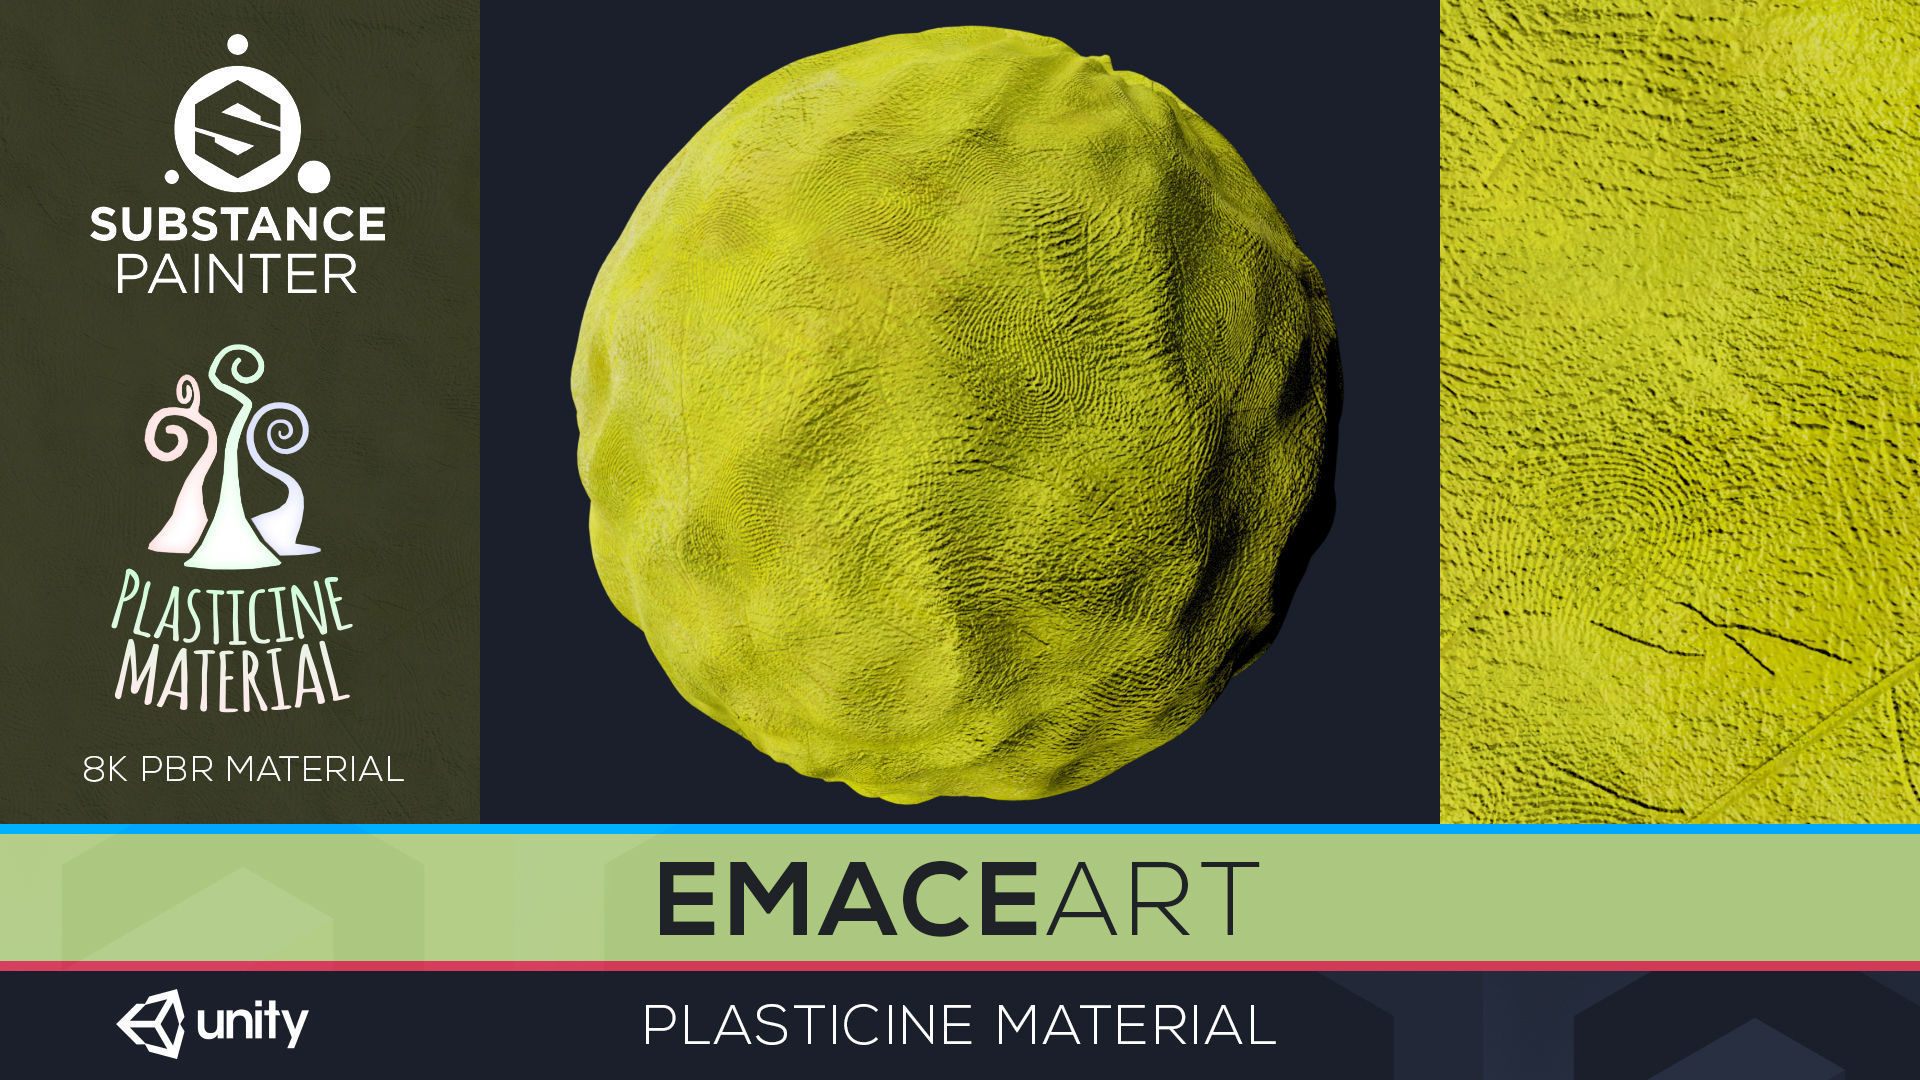 PBR Toon Plasticine sbsar Material 6 Substance Unity Material | Texture